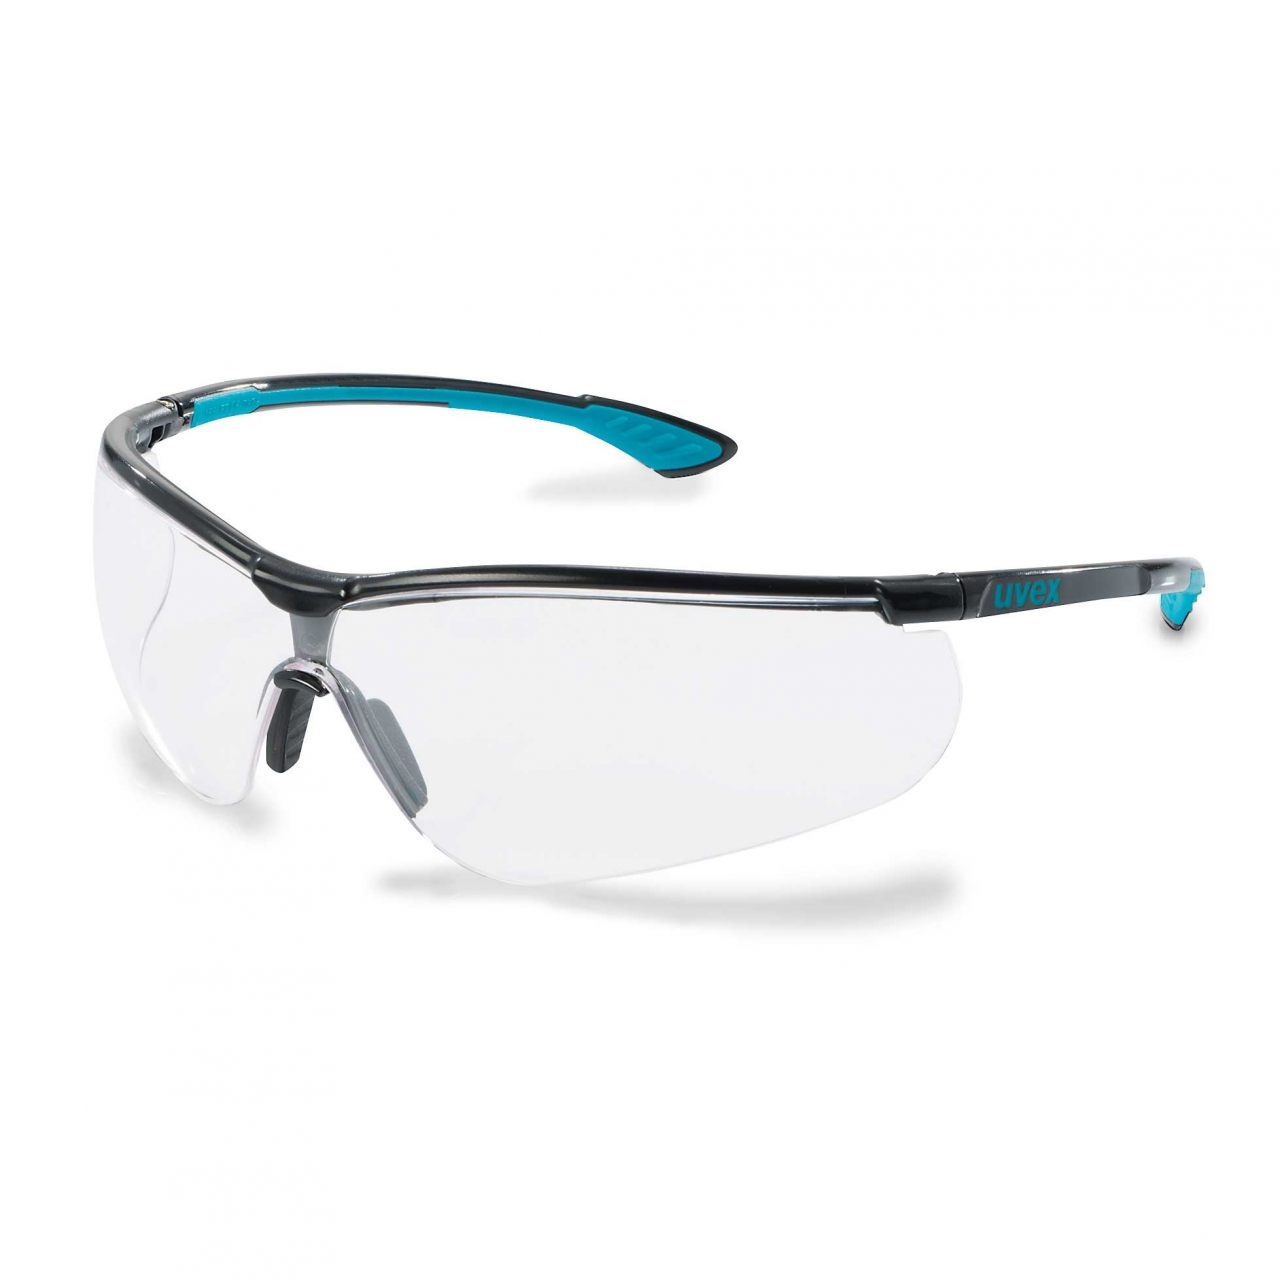 uvex sportstyle spectacles safety glasses uvex safety